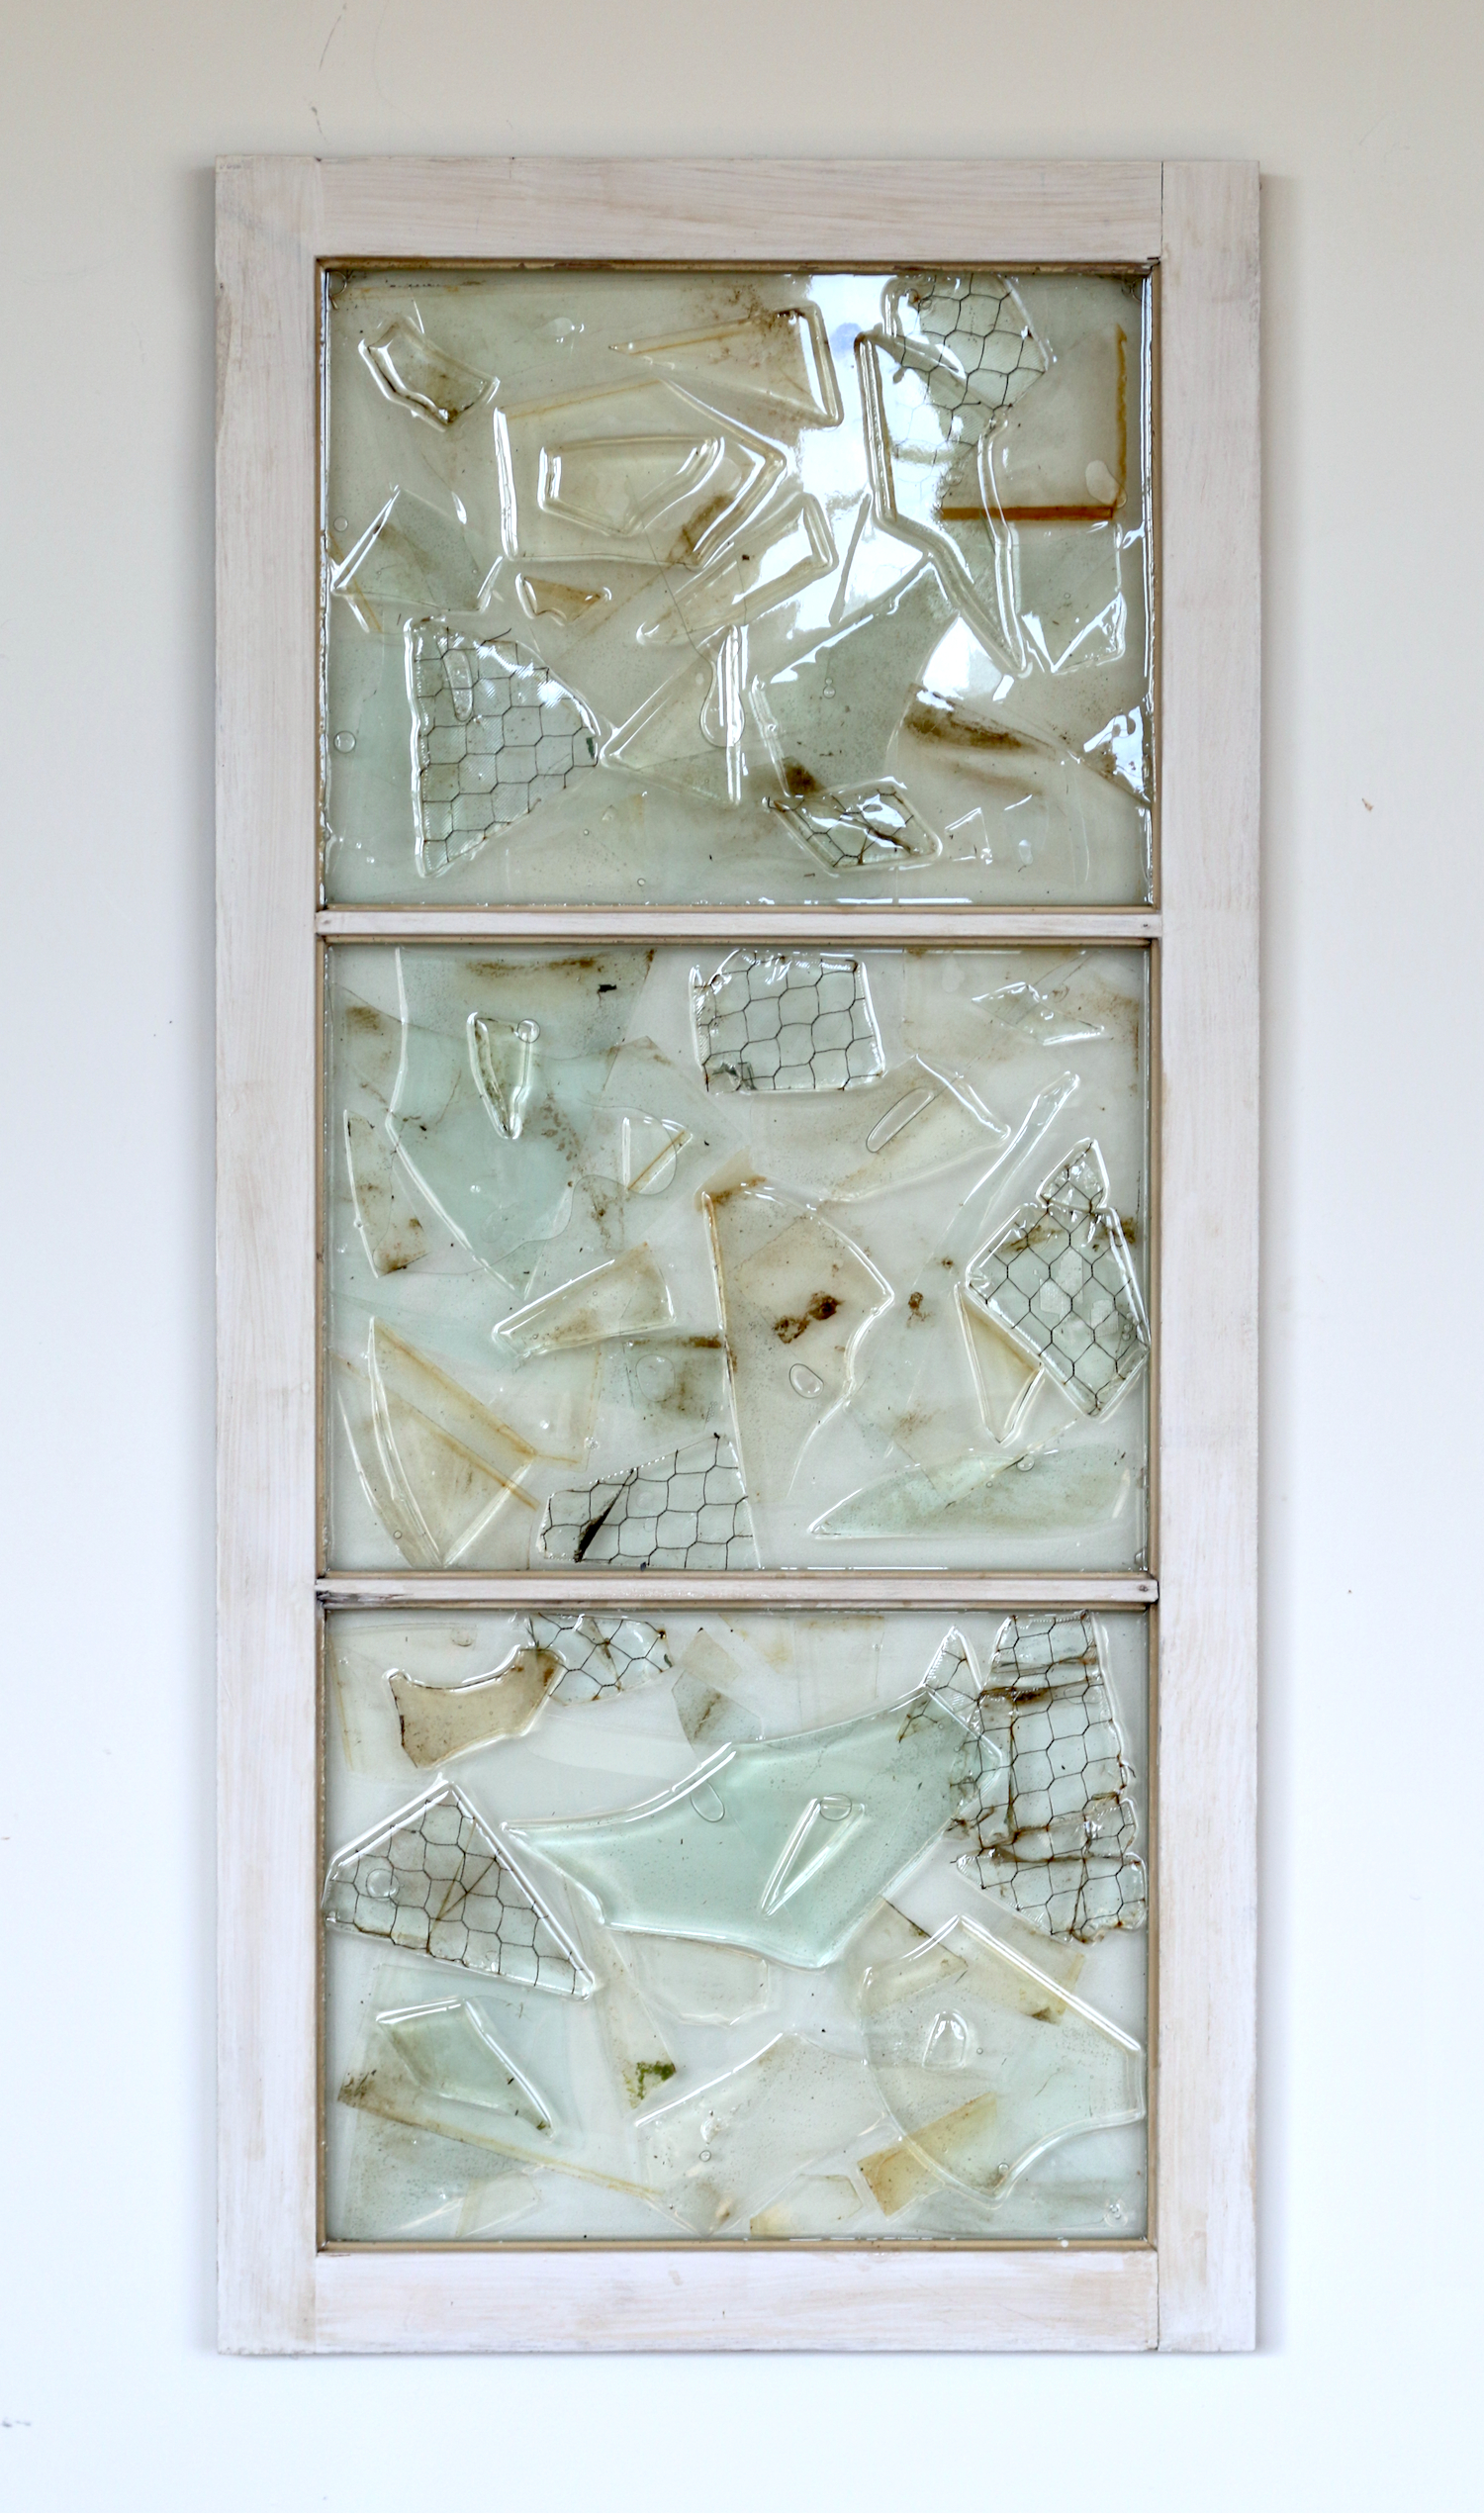 "Clarity is a State of Mind , found glass, window, resin, 24""x45"", 2015."